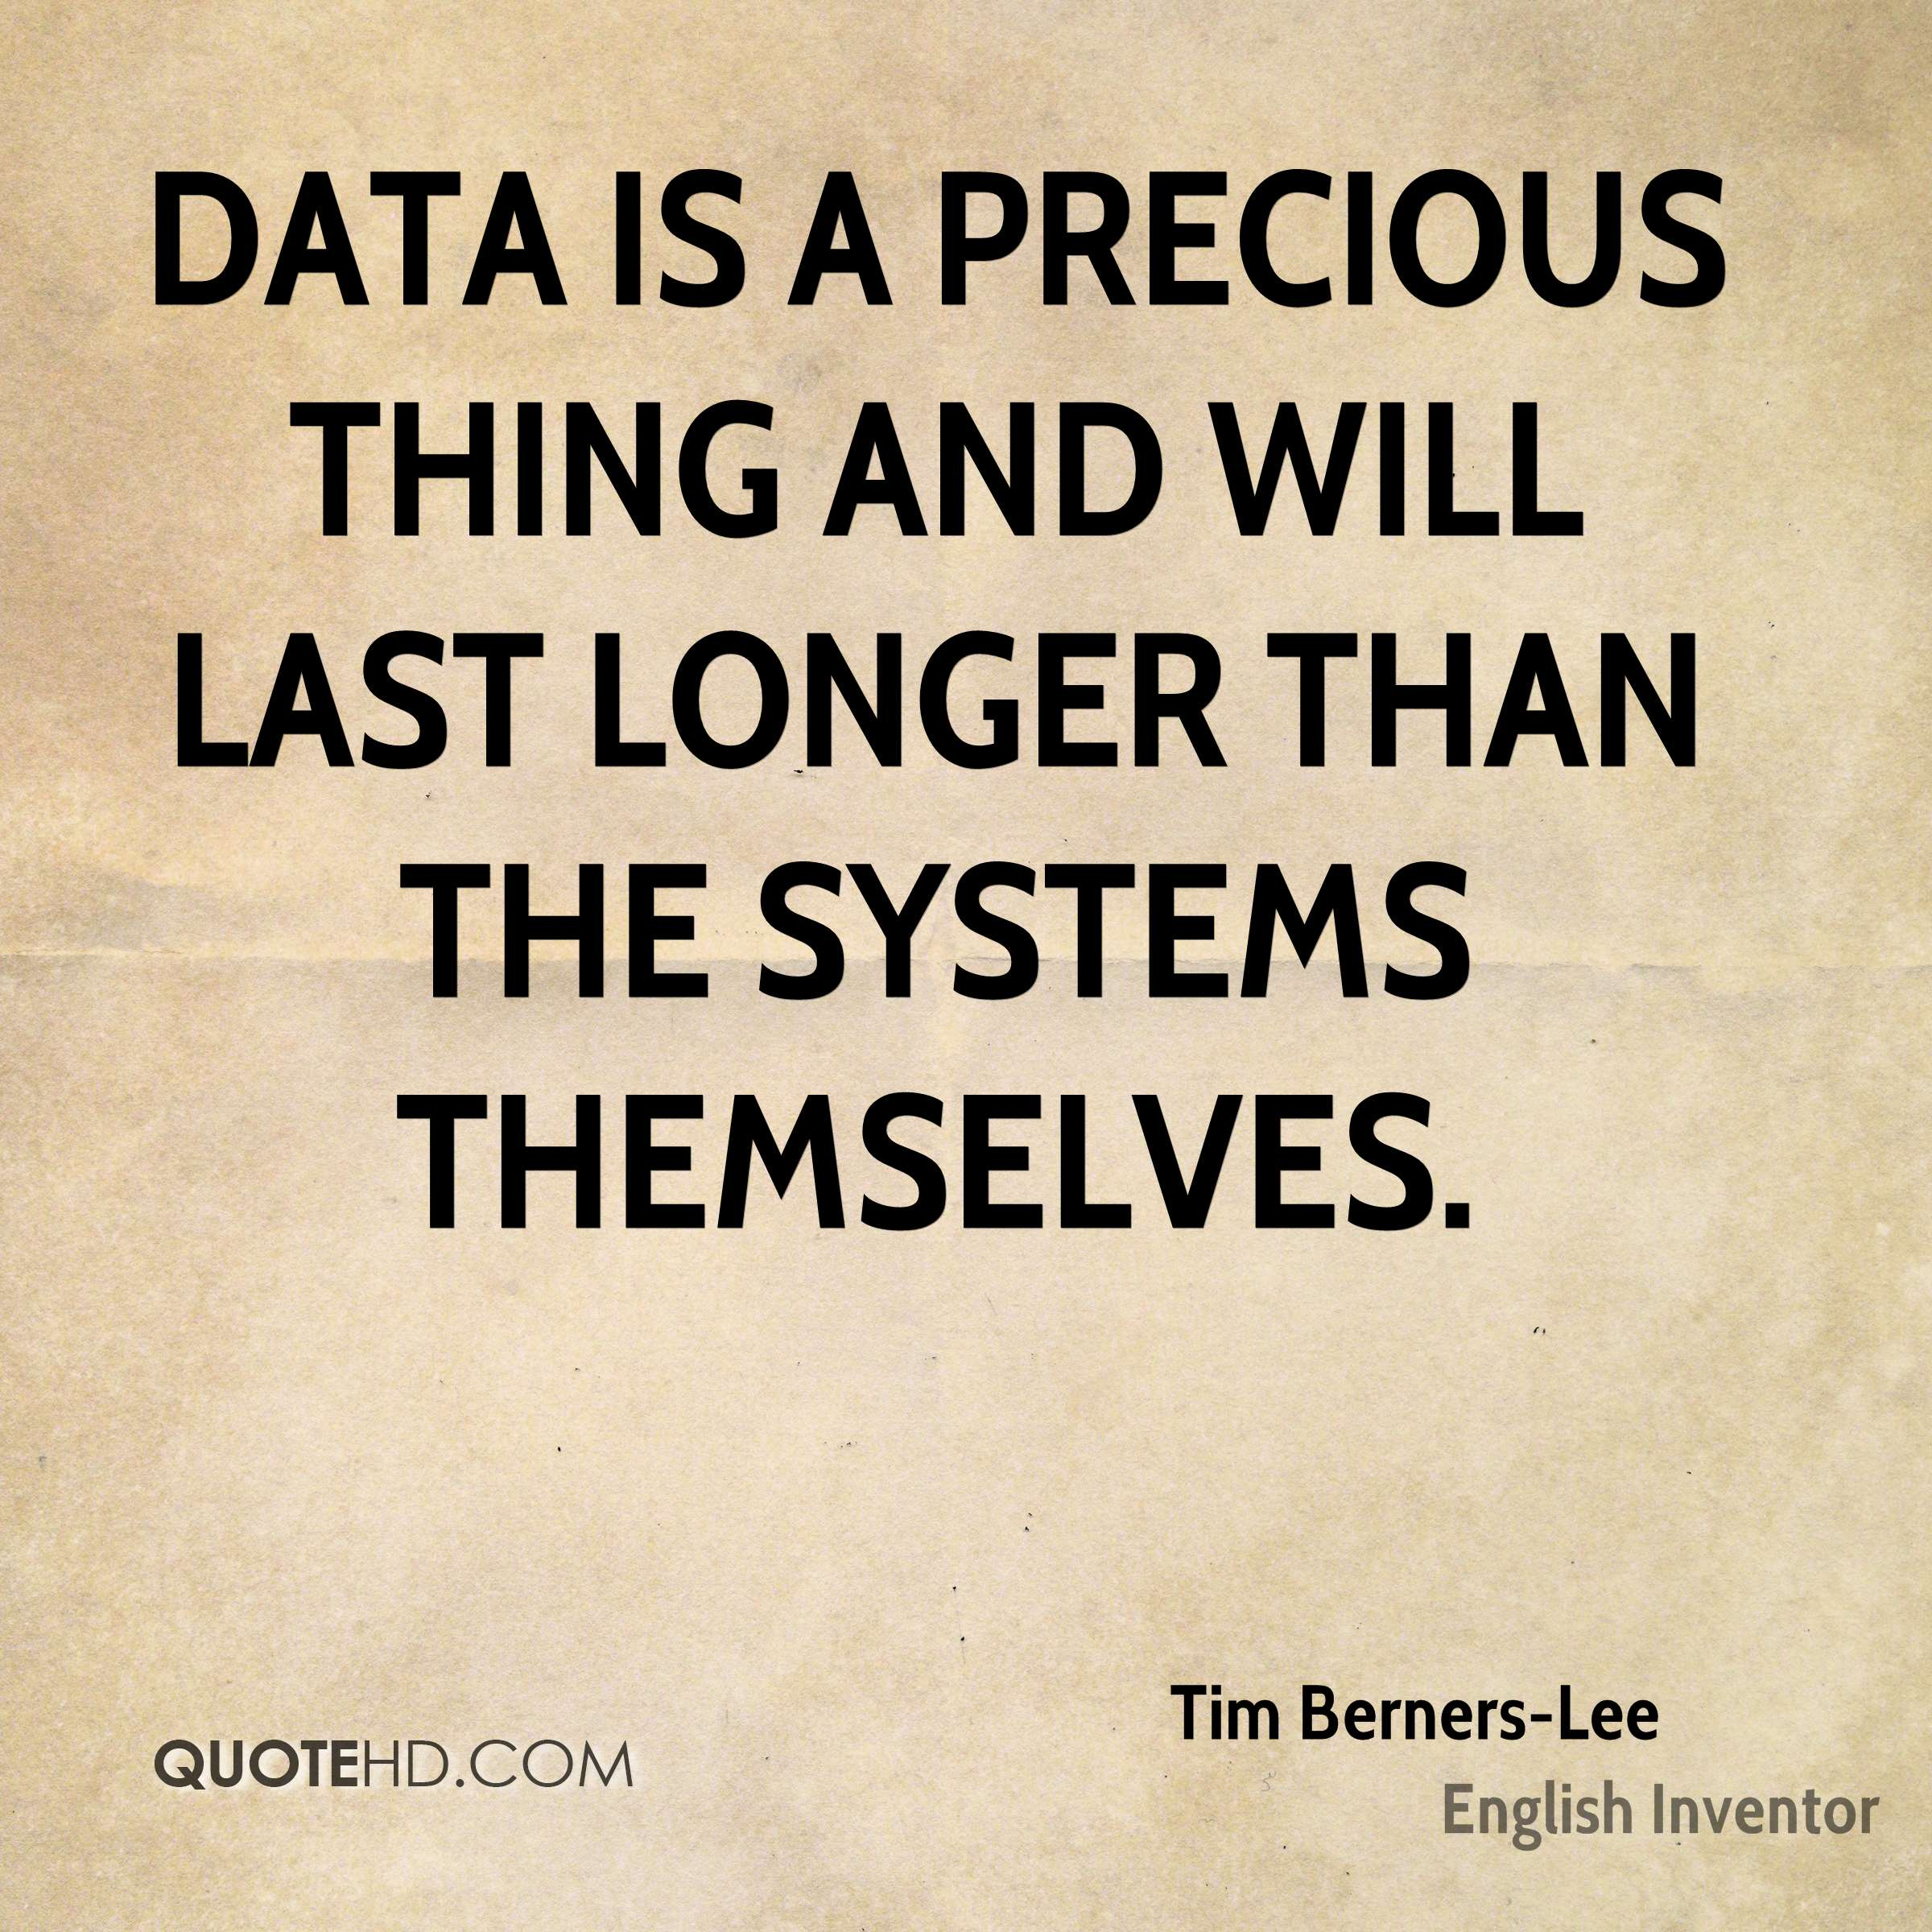 Data is a precious thing and will last longer than the systems themselves.